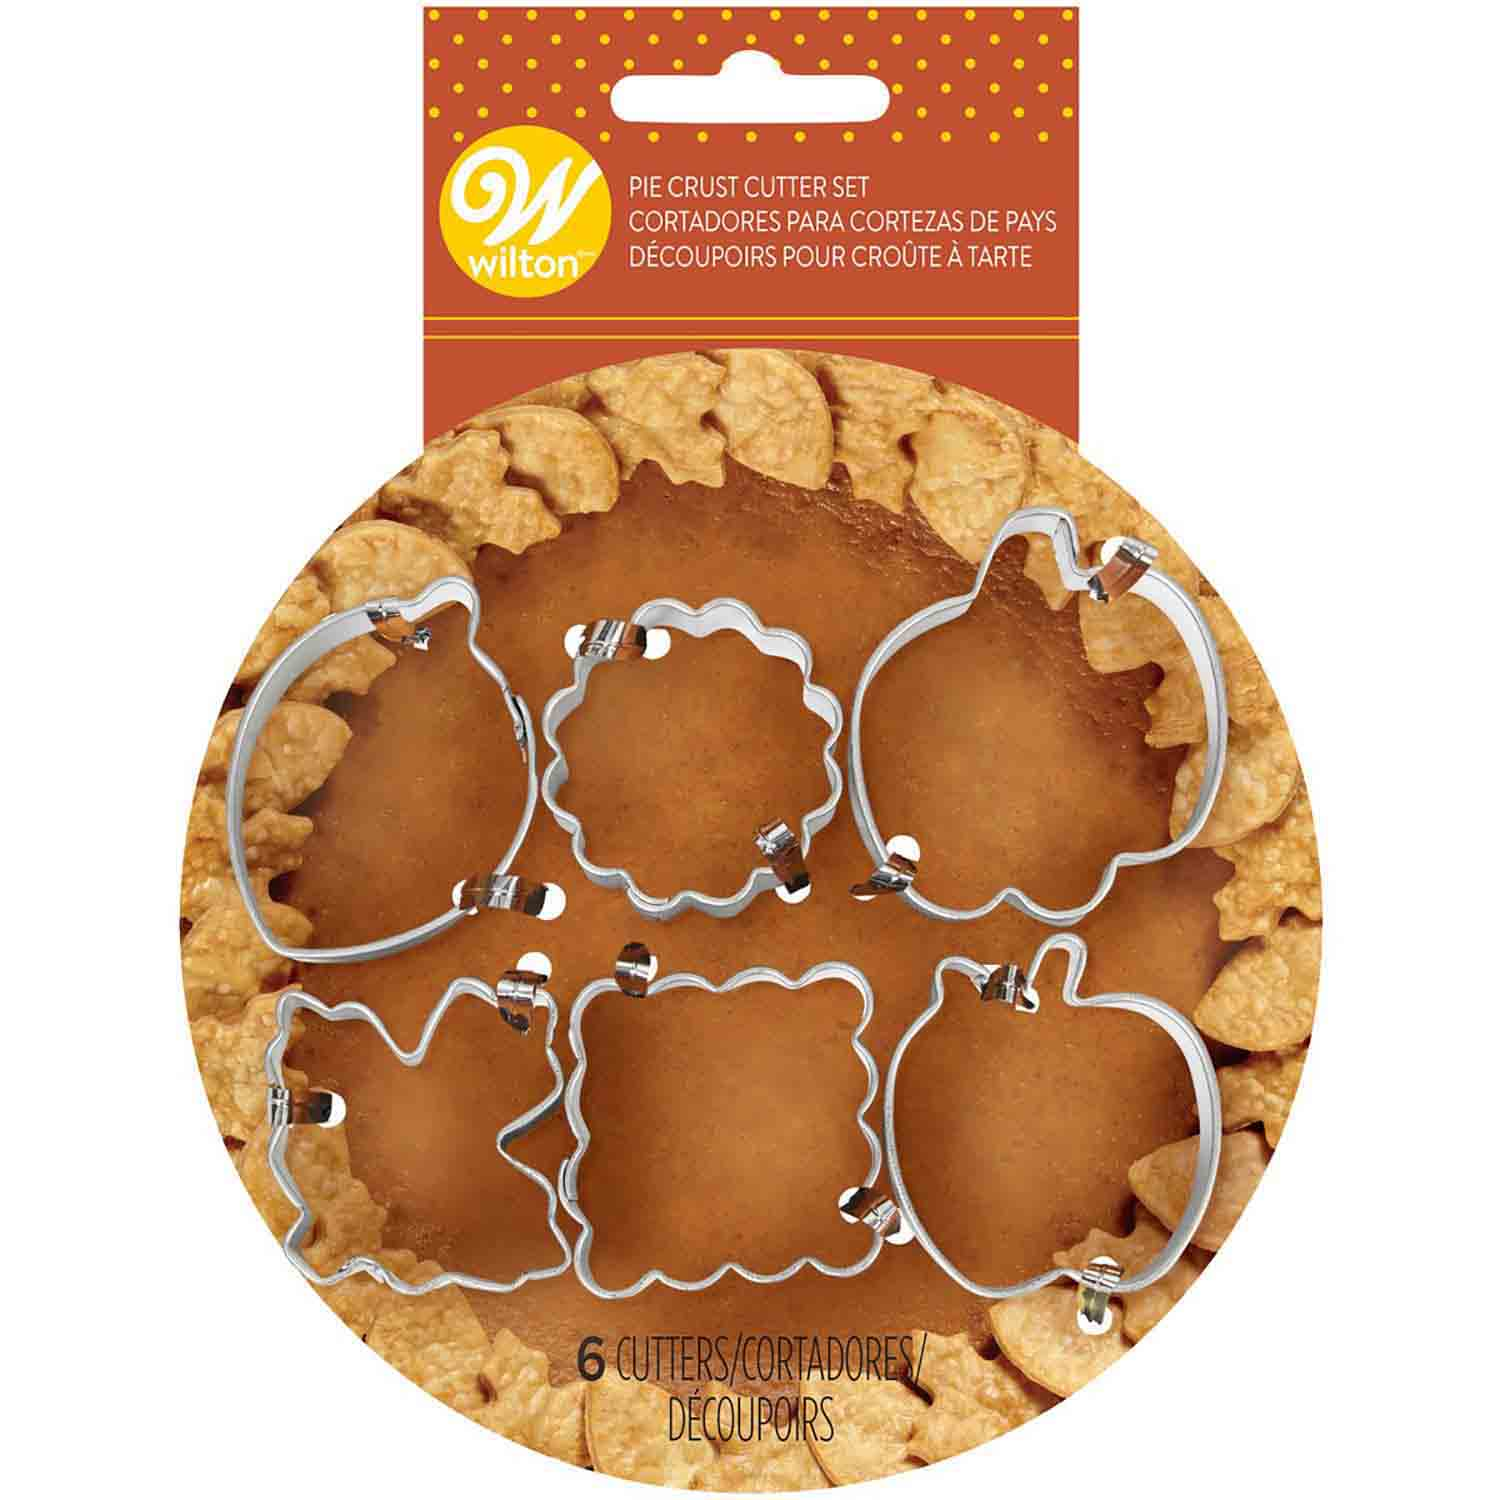 Fall Pie Crust Cutter Set